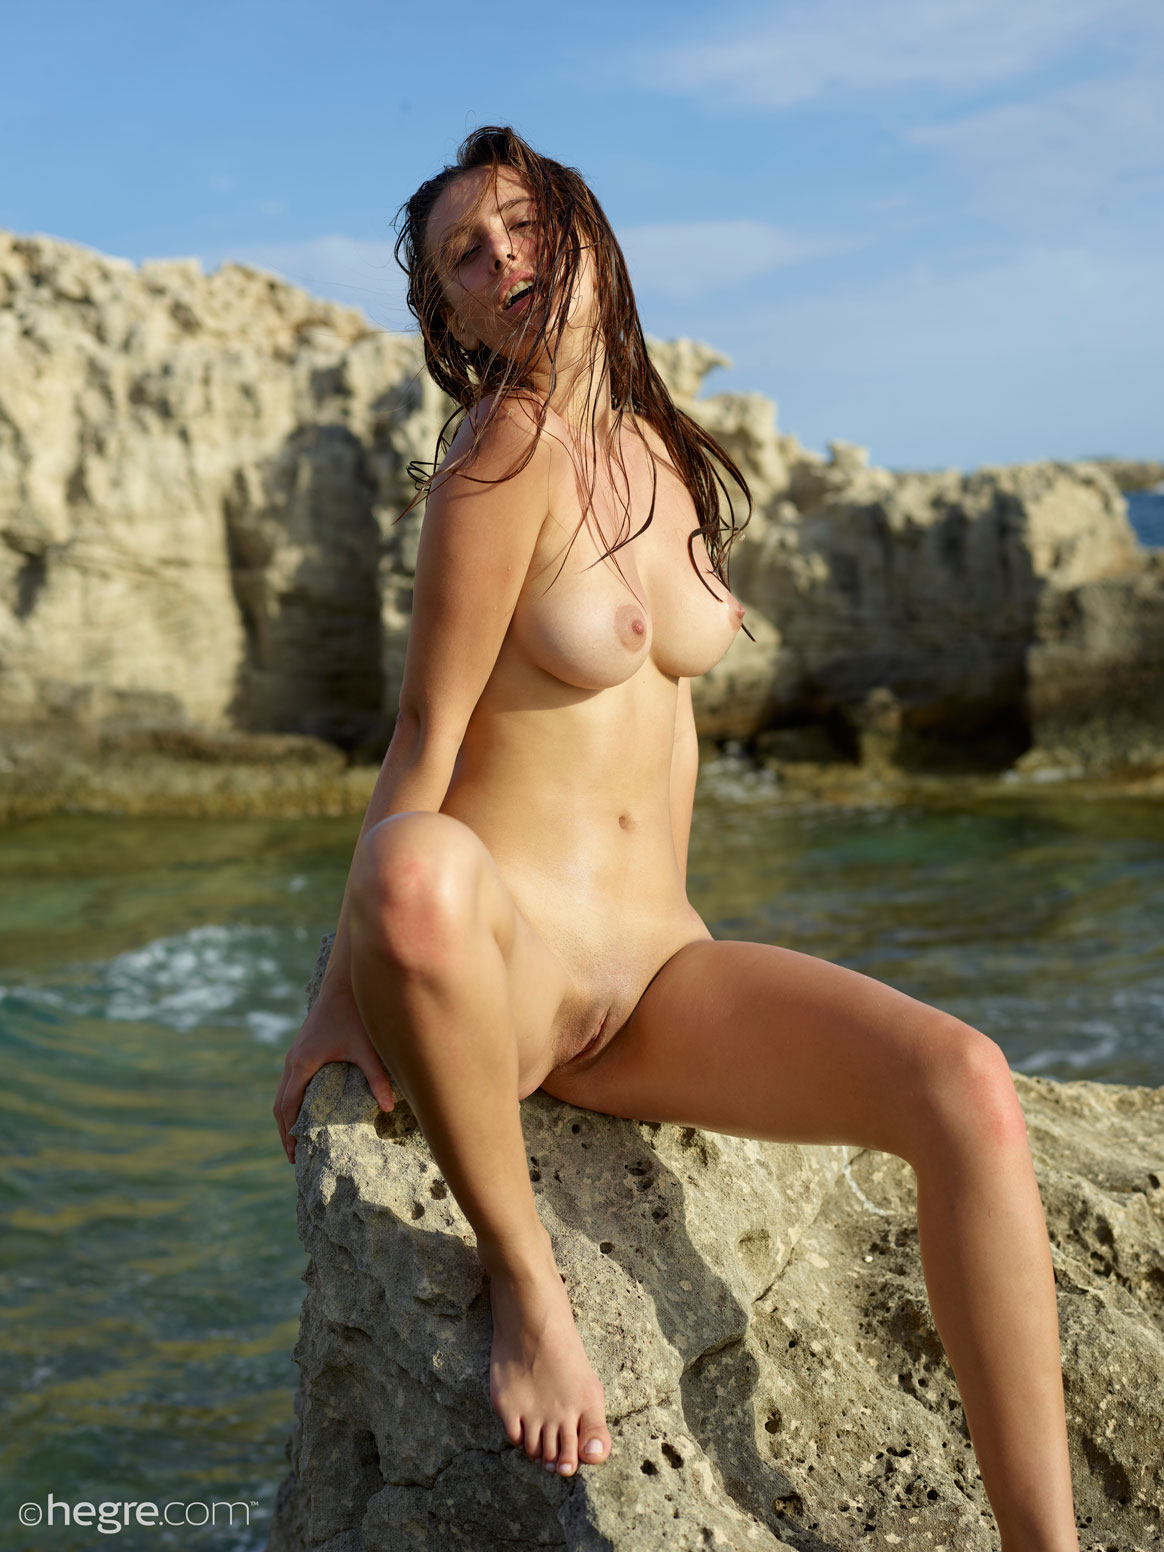 cdn gyrls wp content uploads 2018 04 30 alisa i nude and wet in the sun 10